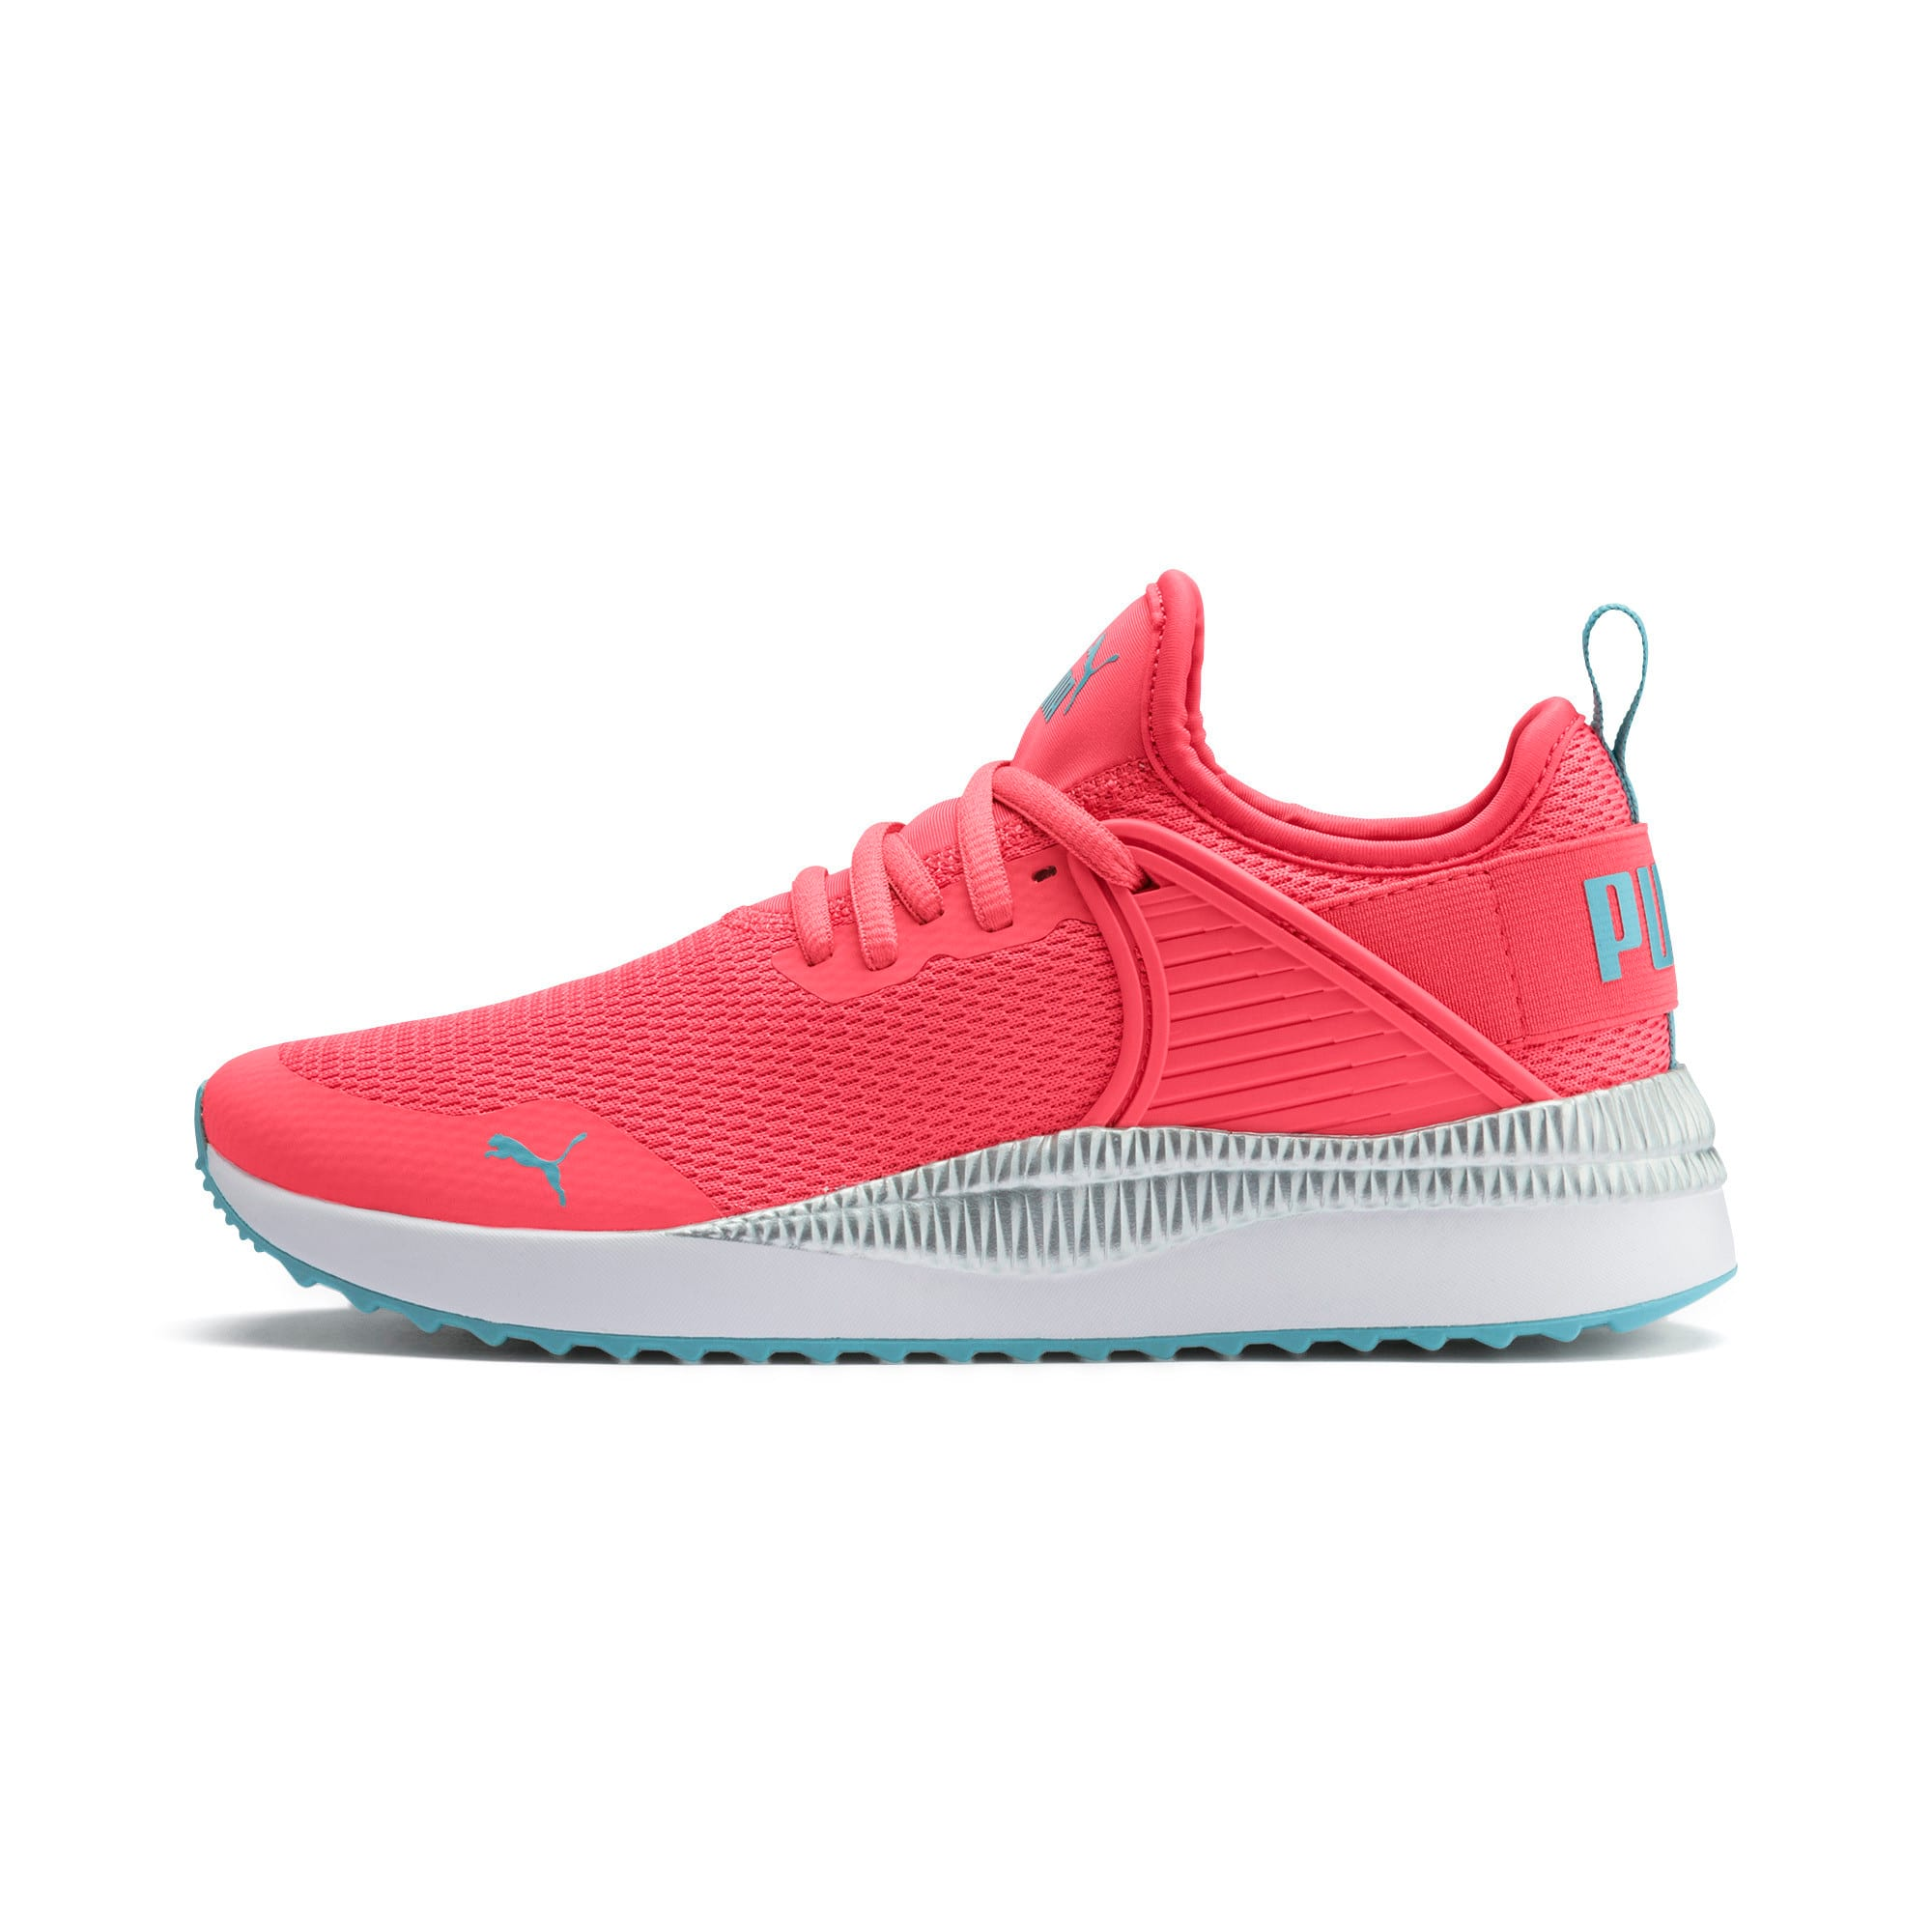 Thumbnail 1 of Pacer Next Cage Metallic Sneakers JR, Calypso Coral-Milky Blue, medium